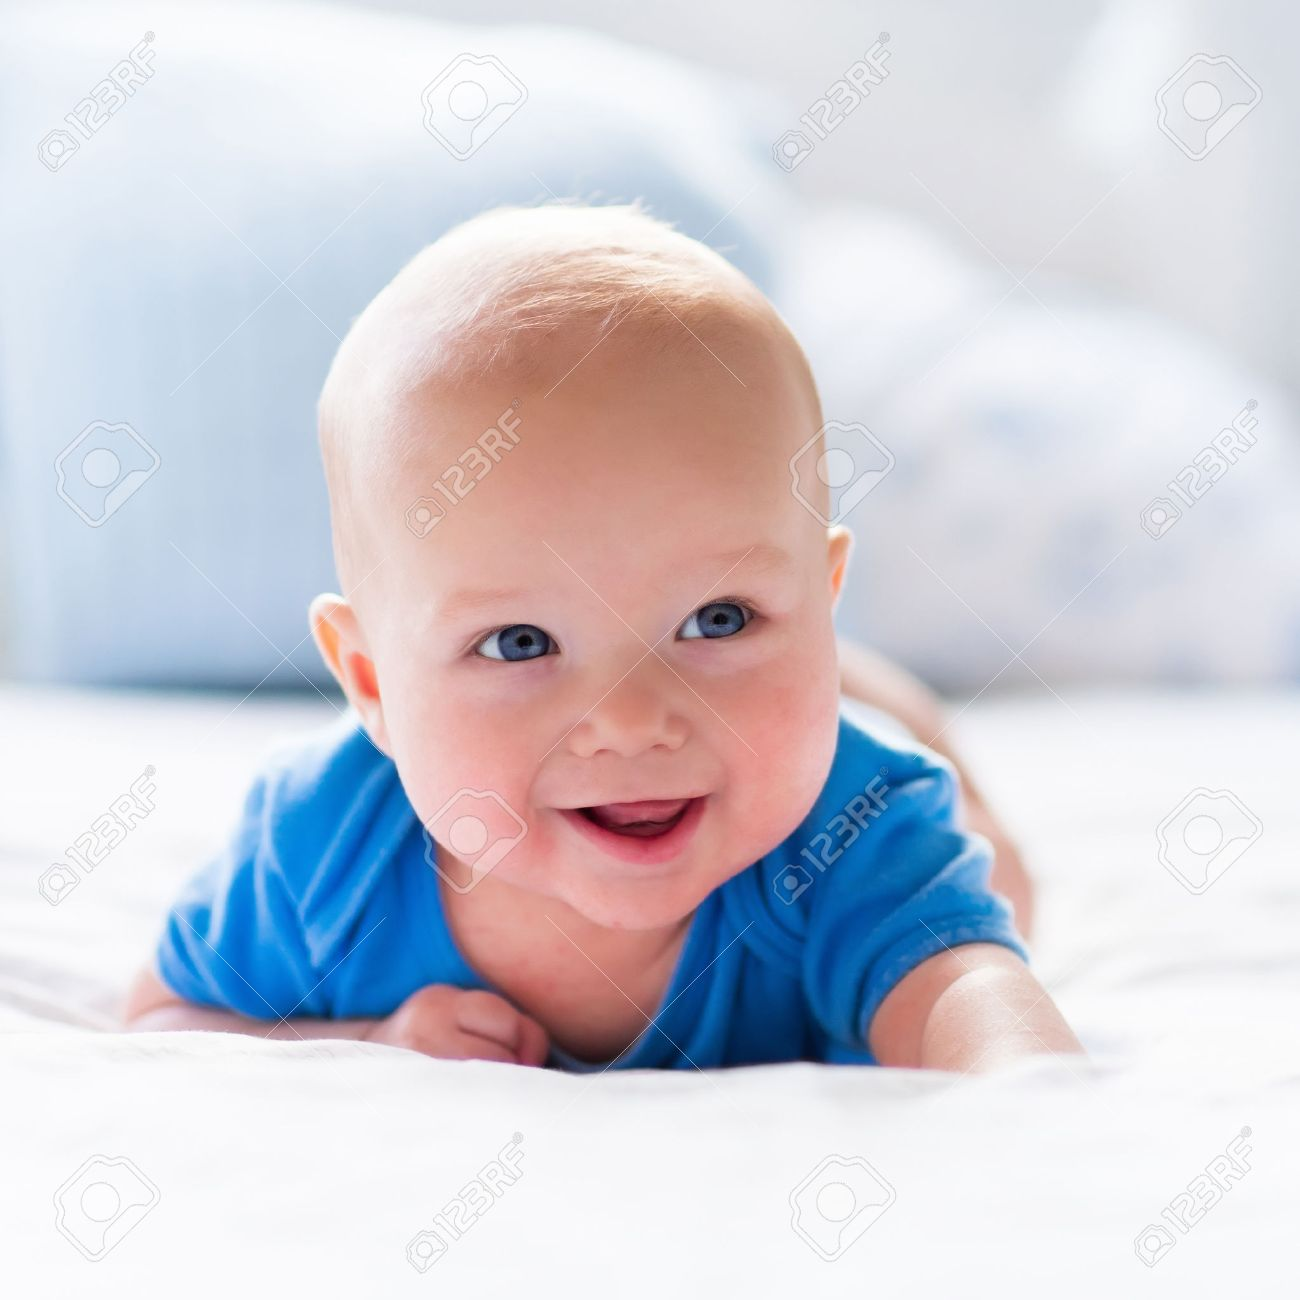 Adorable baby boy in white sunny bedroom. Newborn child relaxing in bed. Nursery for young children. Textile and bedding for kids. Family morning at home. New born kid during tummy time with toy bear. - 50840314